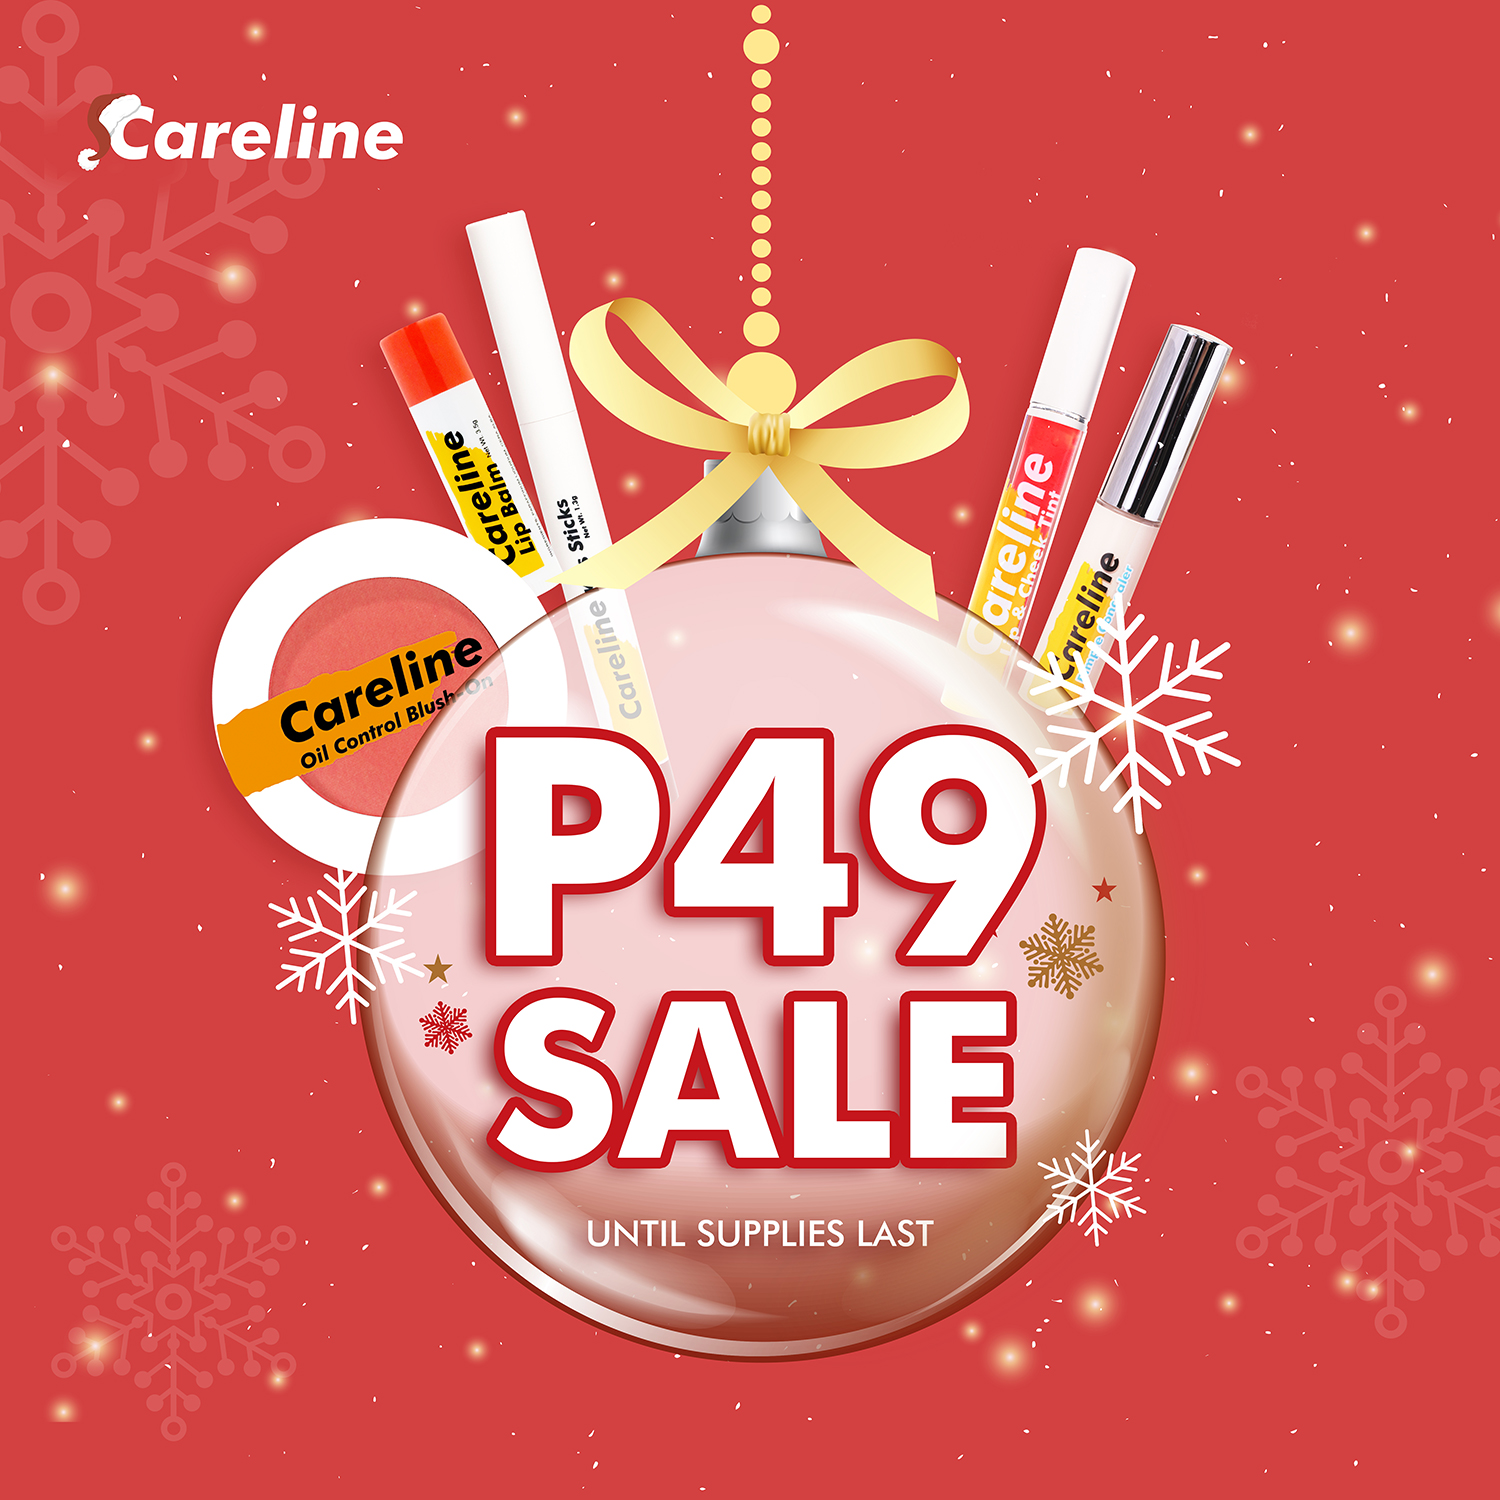 Careline Cosmetics P49 and P99 deals extended until Dec 15